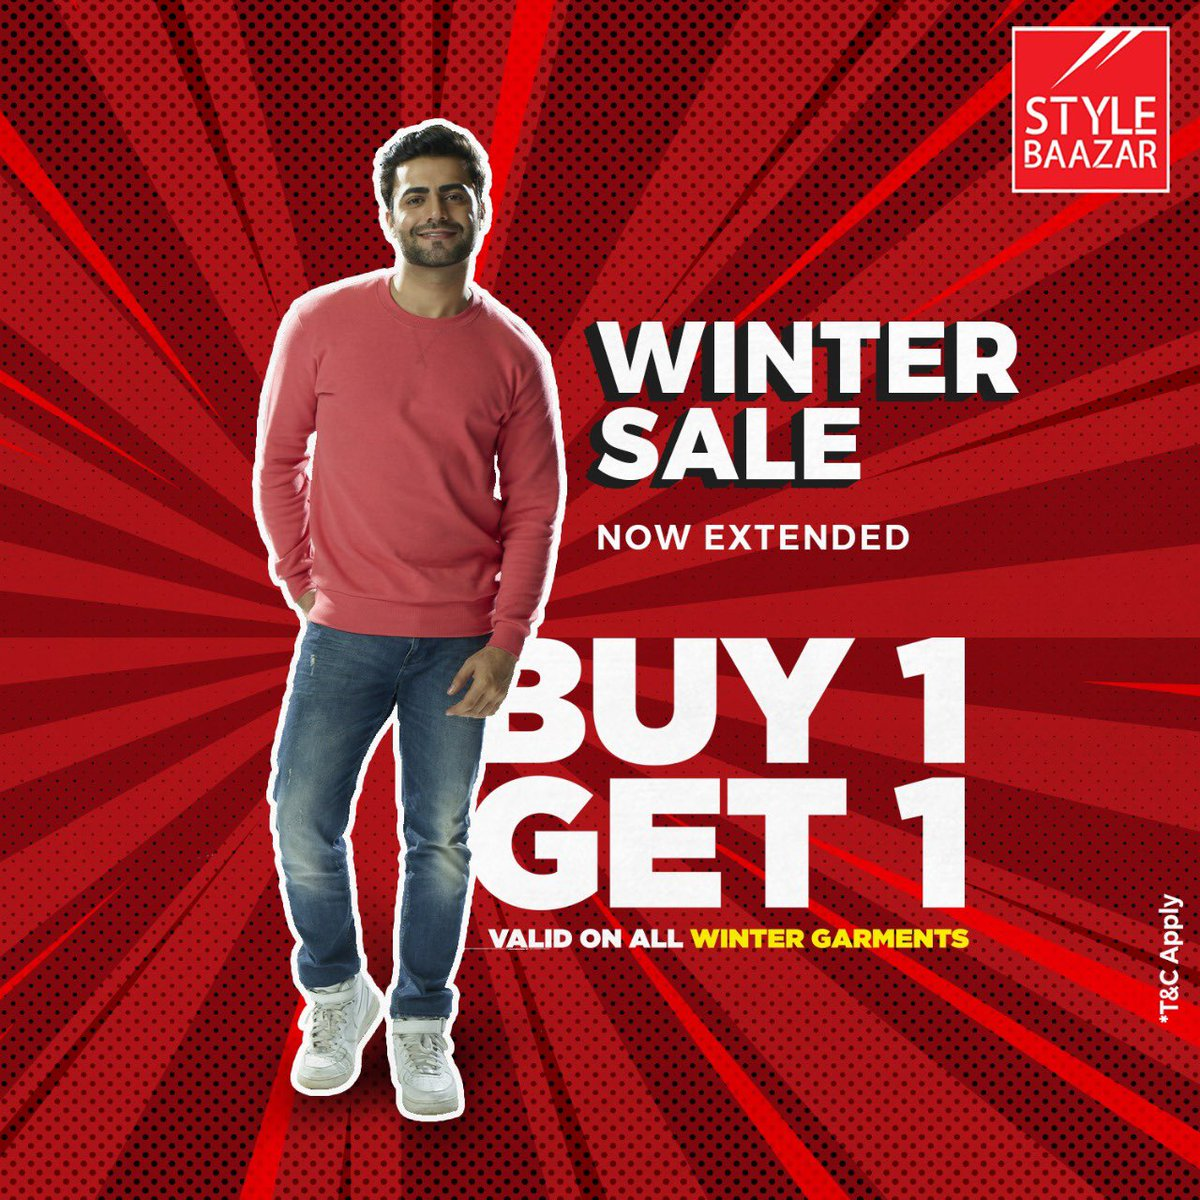 Shop the sale only at Style Baazar! Don't miss our Buy 1 Get 1 Free offer on all Winter Garments across all stores.  #StyleBaazar #Style #Sale #WinterSale #BiggestWinterSale #BOGO #Buy1Get1 #GrabNow #Shopping #Fashion #WinterShopping #Fun #Love #StayInStyle #Celebration